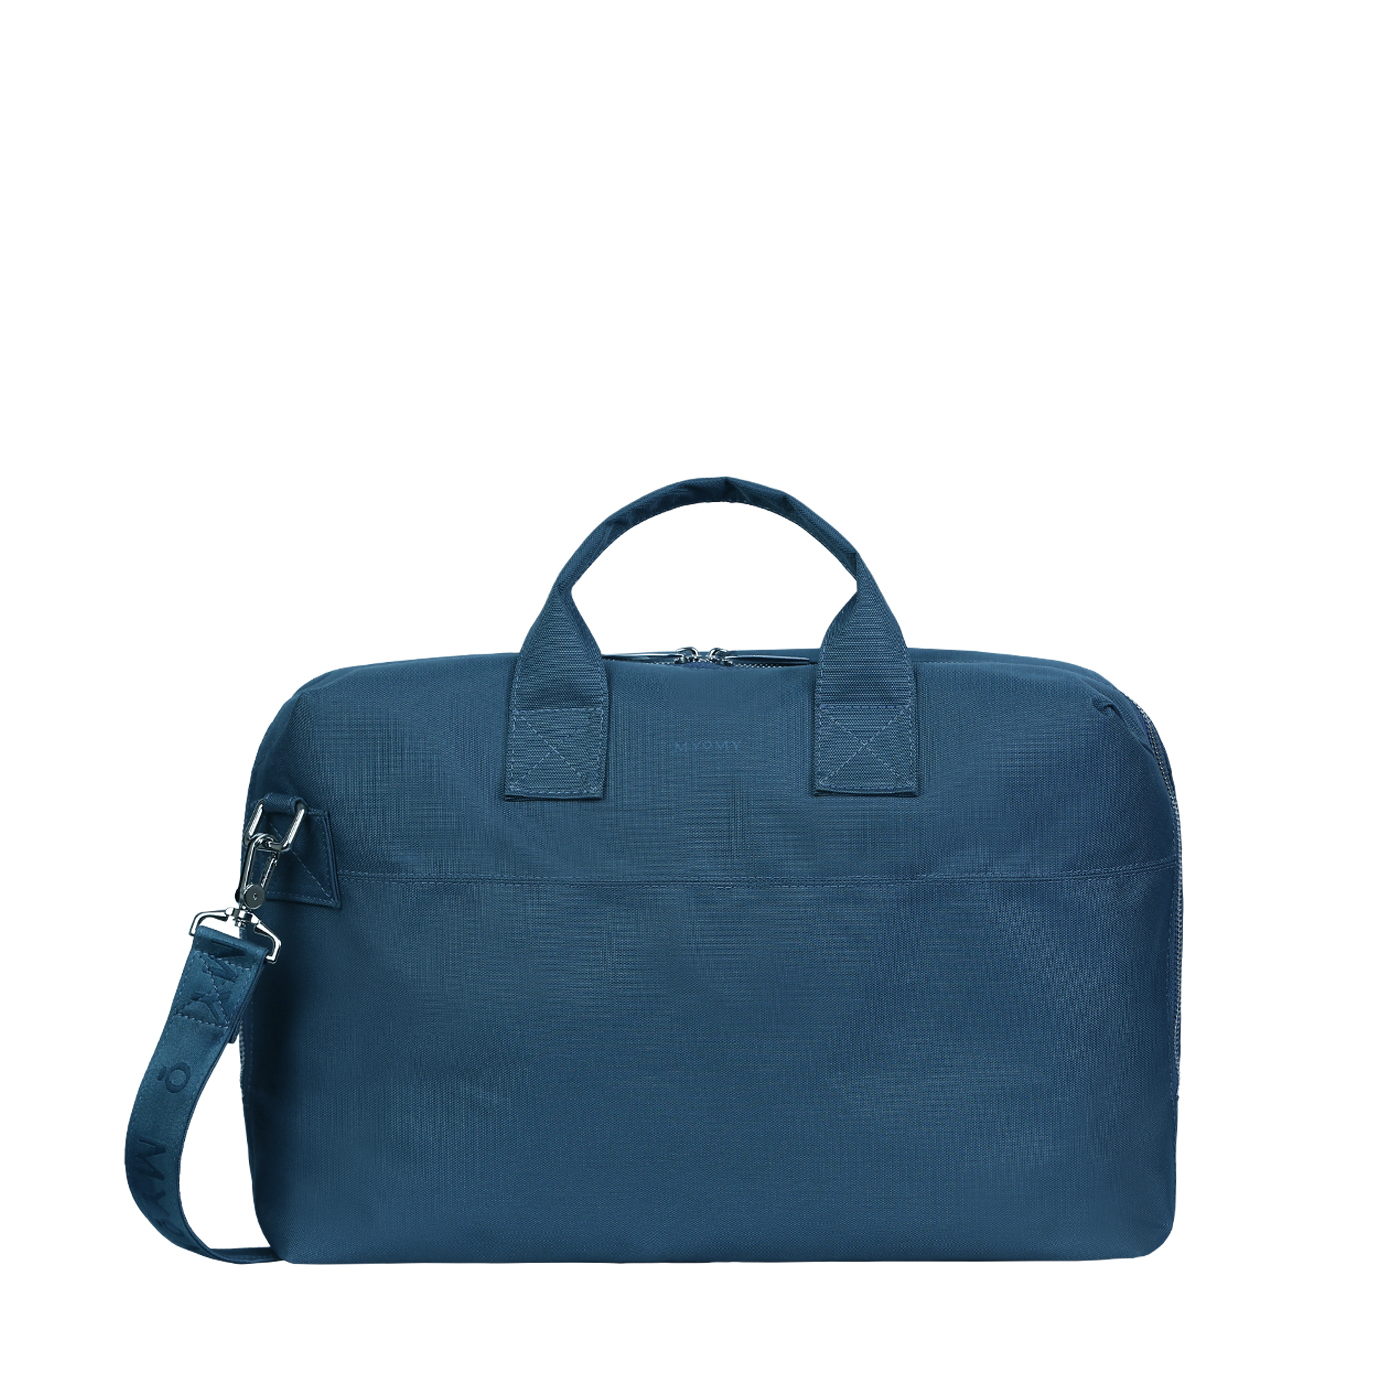 MY PHILIP BAG Business - RPET Blue